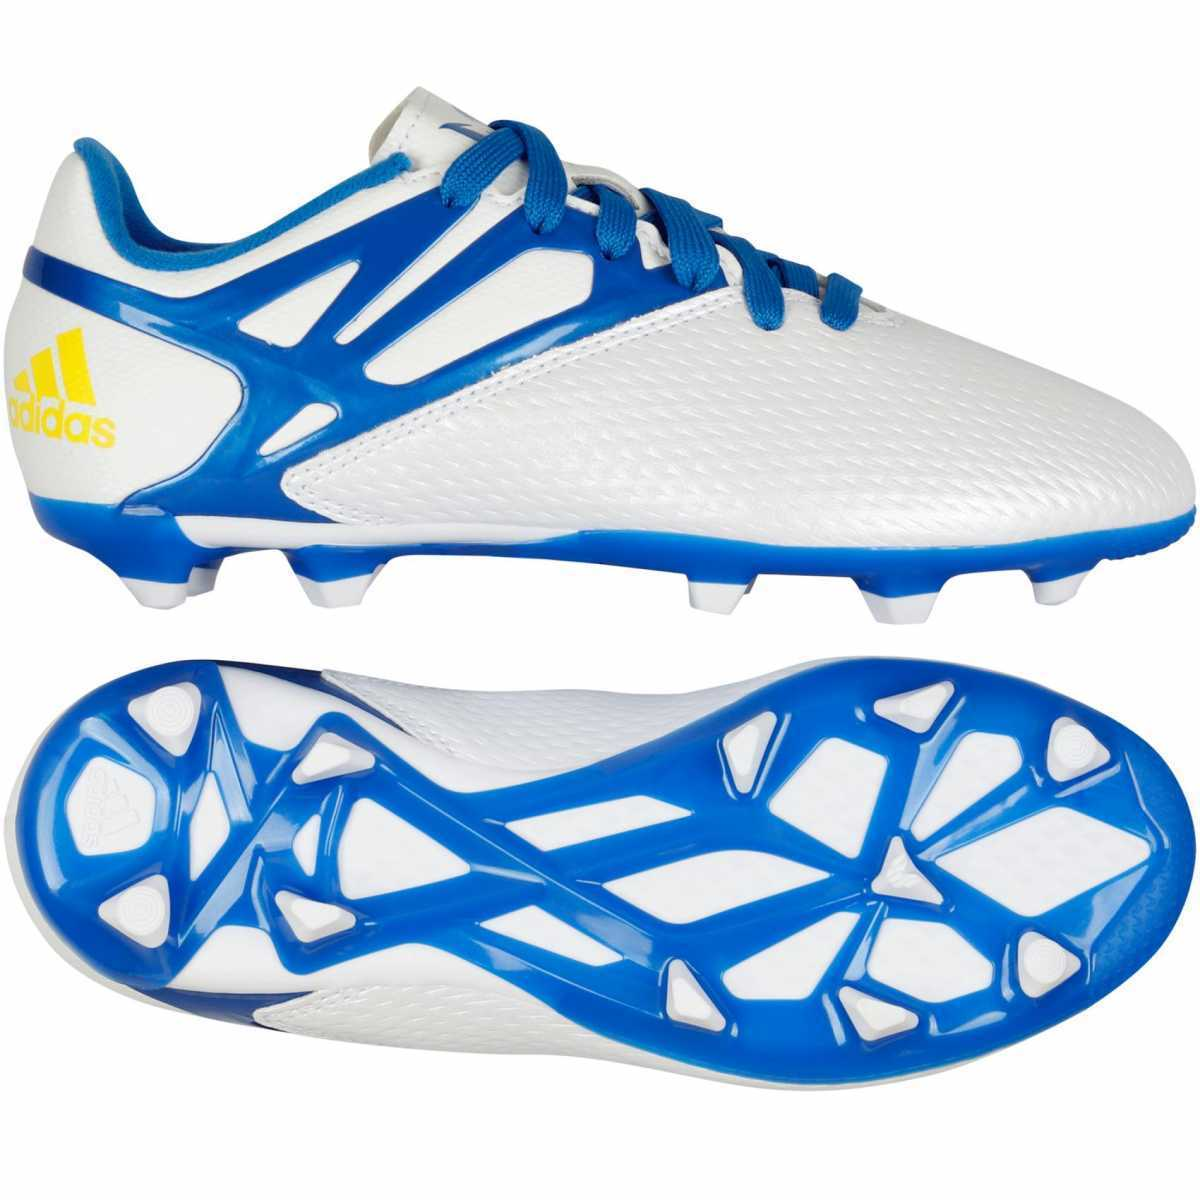 Adidas  Messi 15.3 FG AG Men's Soccer Cleats B34360 MSRP  75